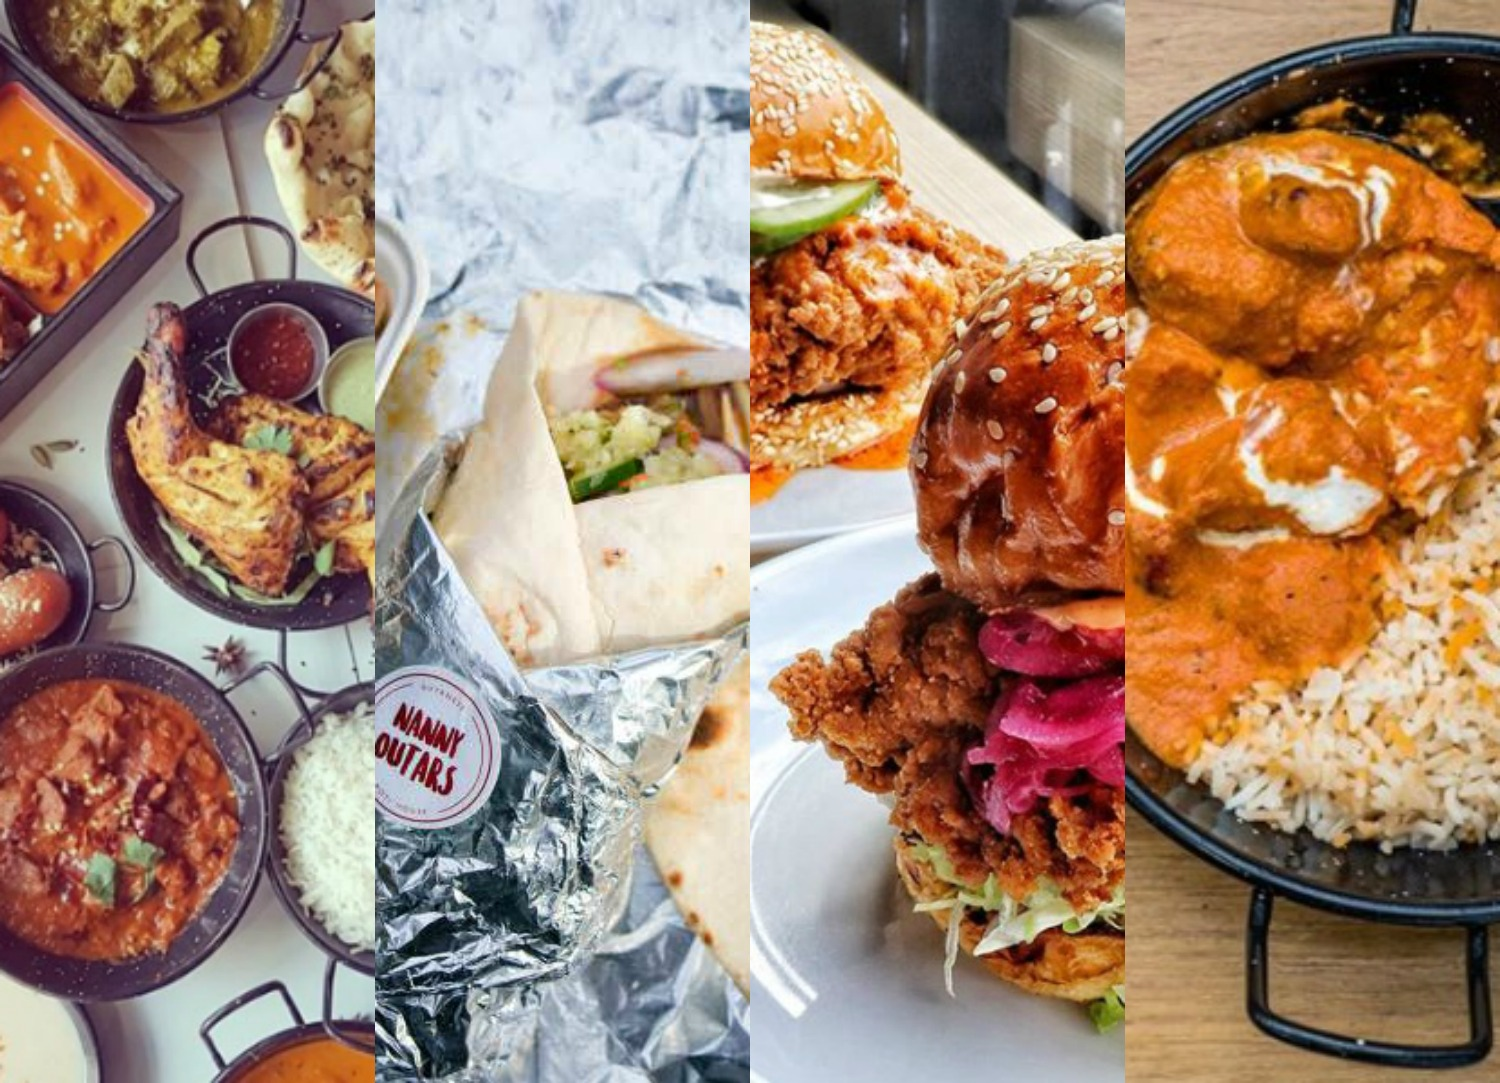 An assortment of the food available in and around Croydon